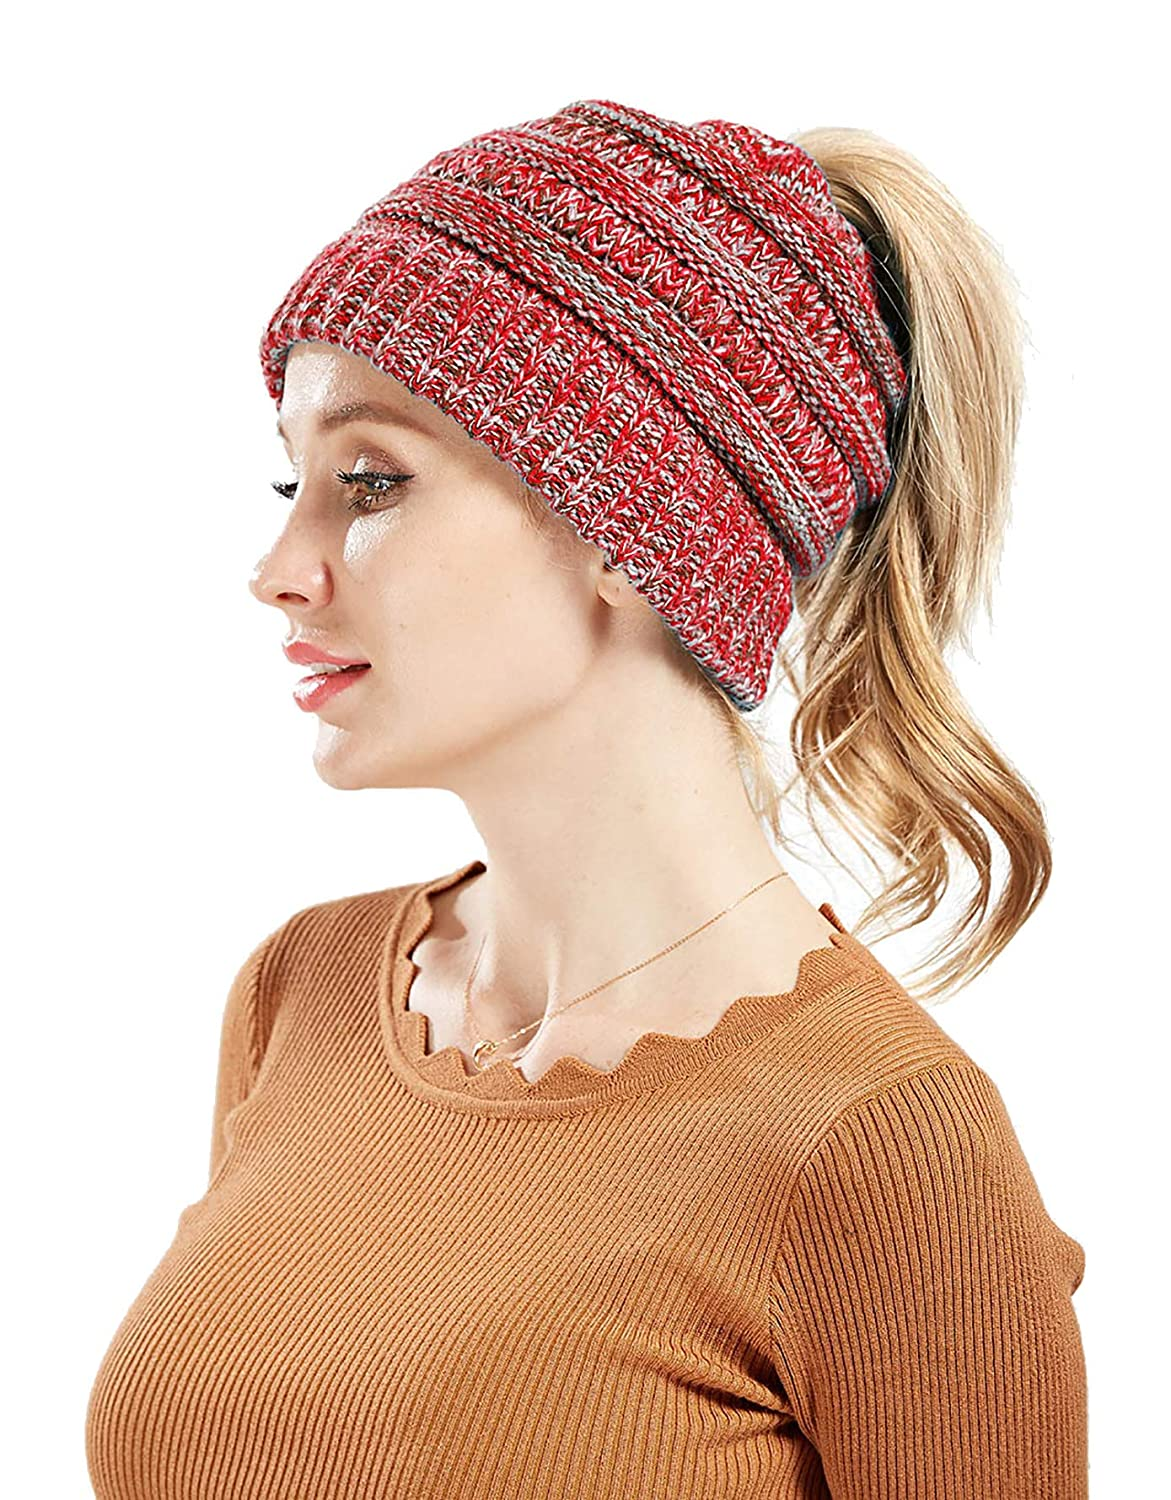 EINSKEY Womens Messy Bun Beanie Hat Soft Stretch Cable Knit Ponytail Skull Cap